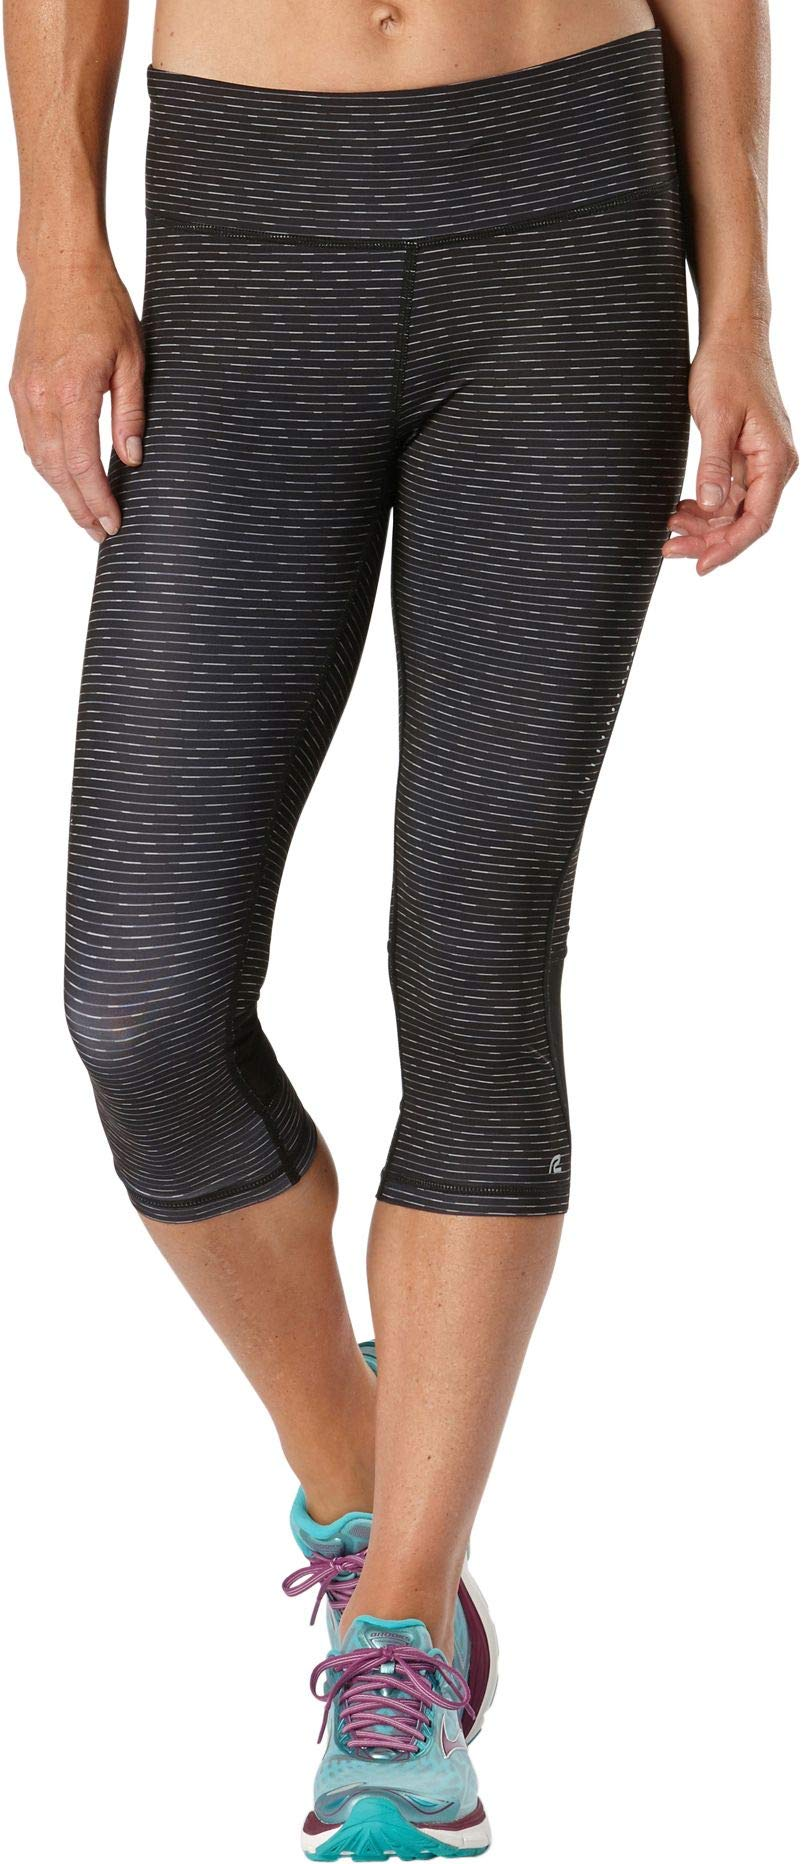 R-Gear Women's 18-inch Compression Capri Tights with Pockets for Gym, Yoga, Fitness, Training, Lounge   Recharge